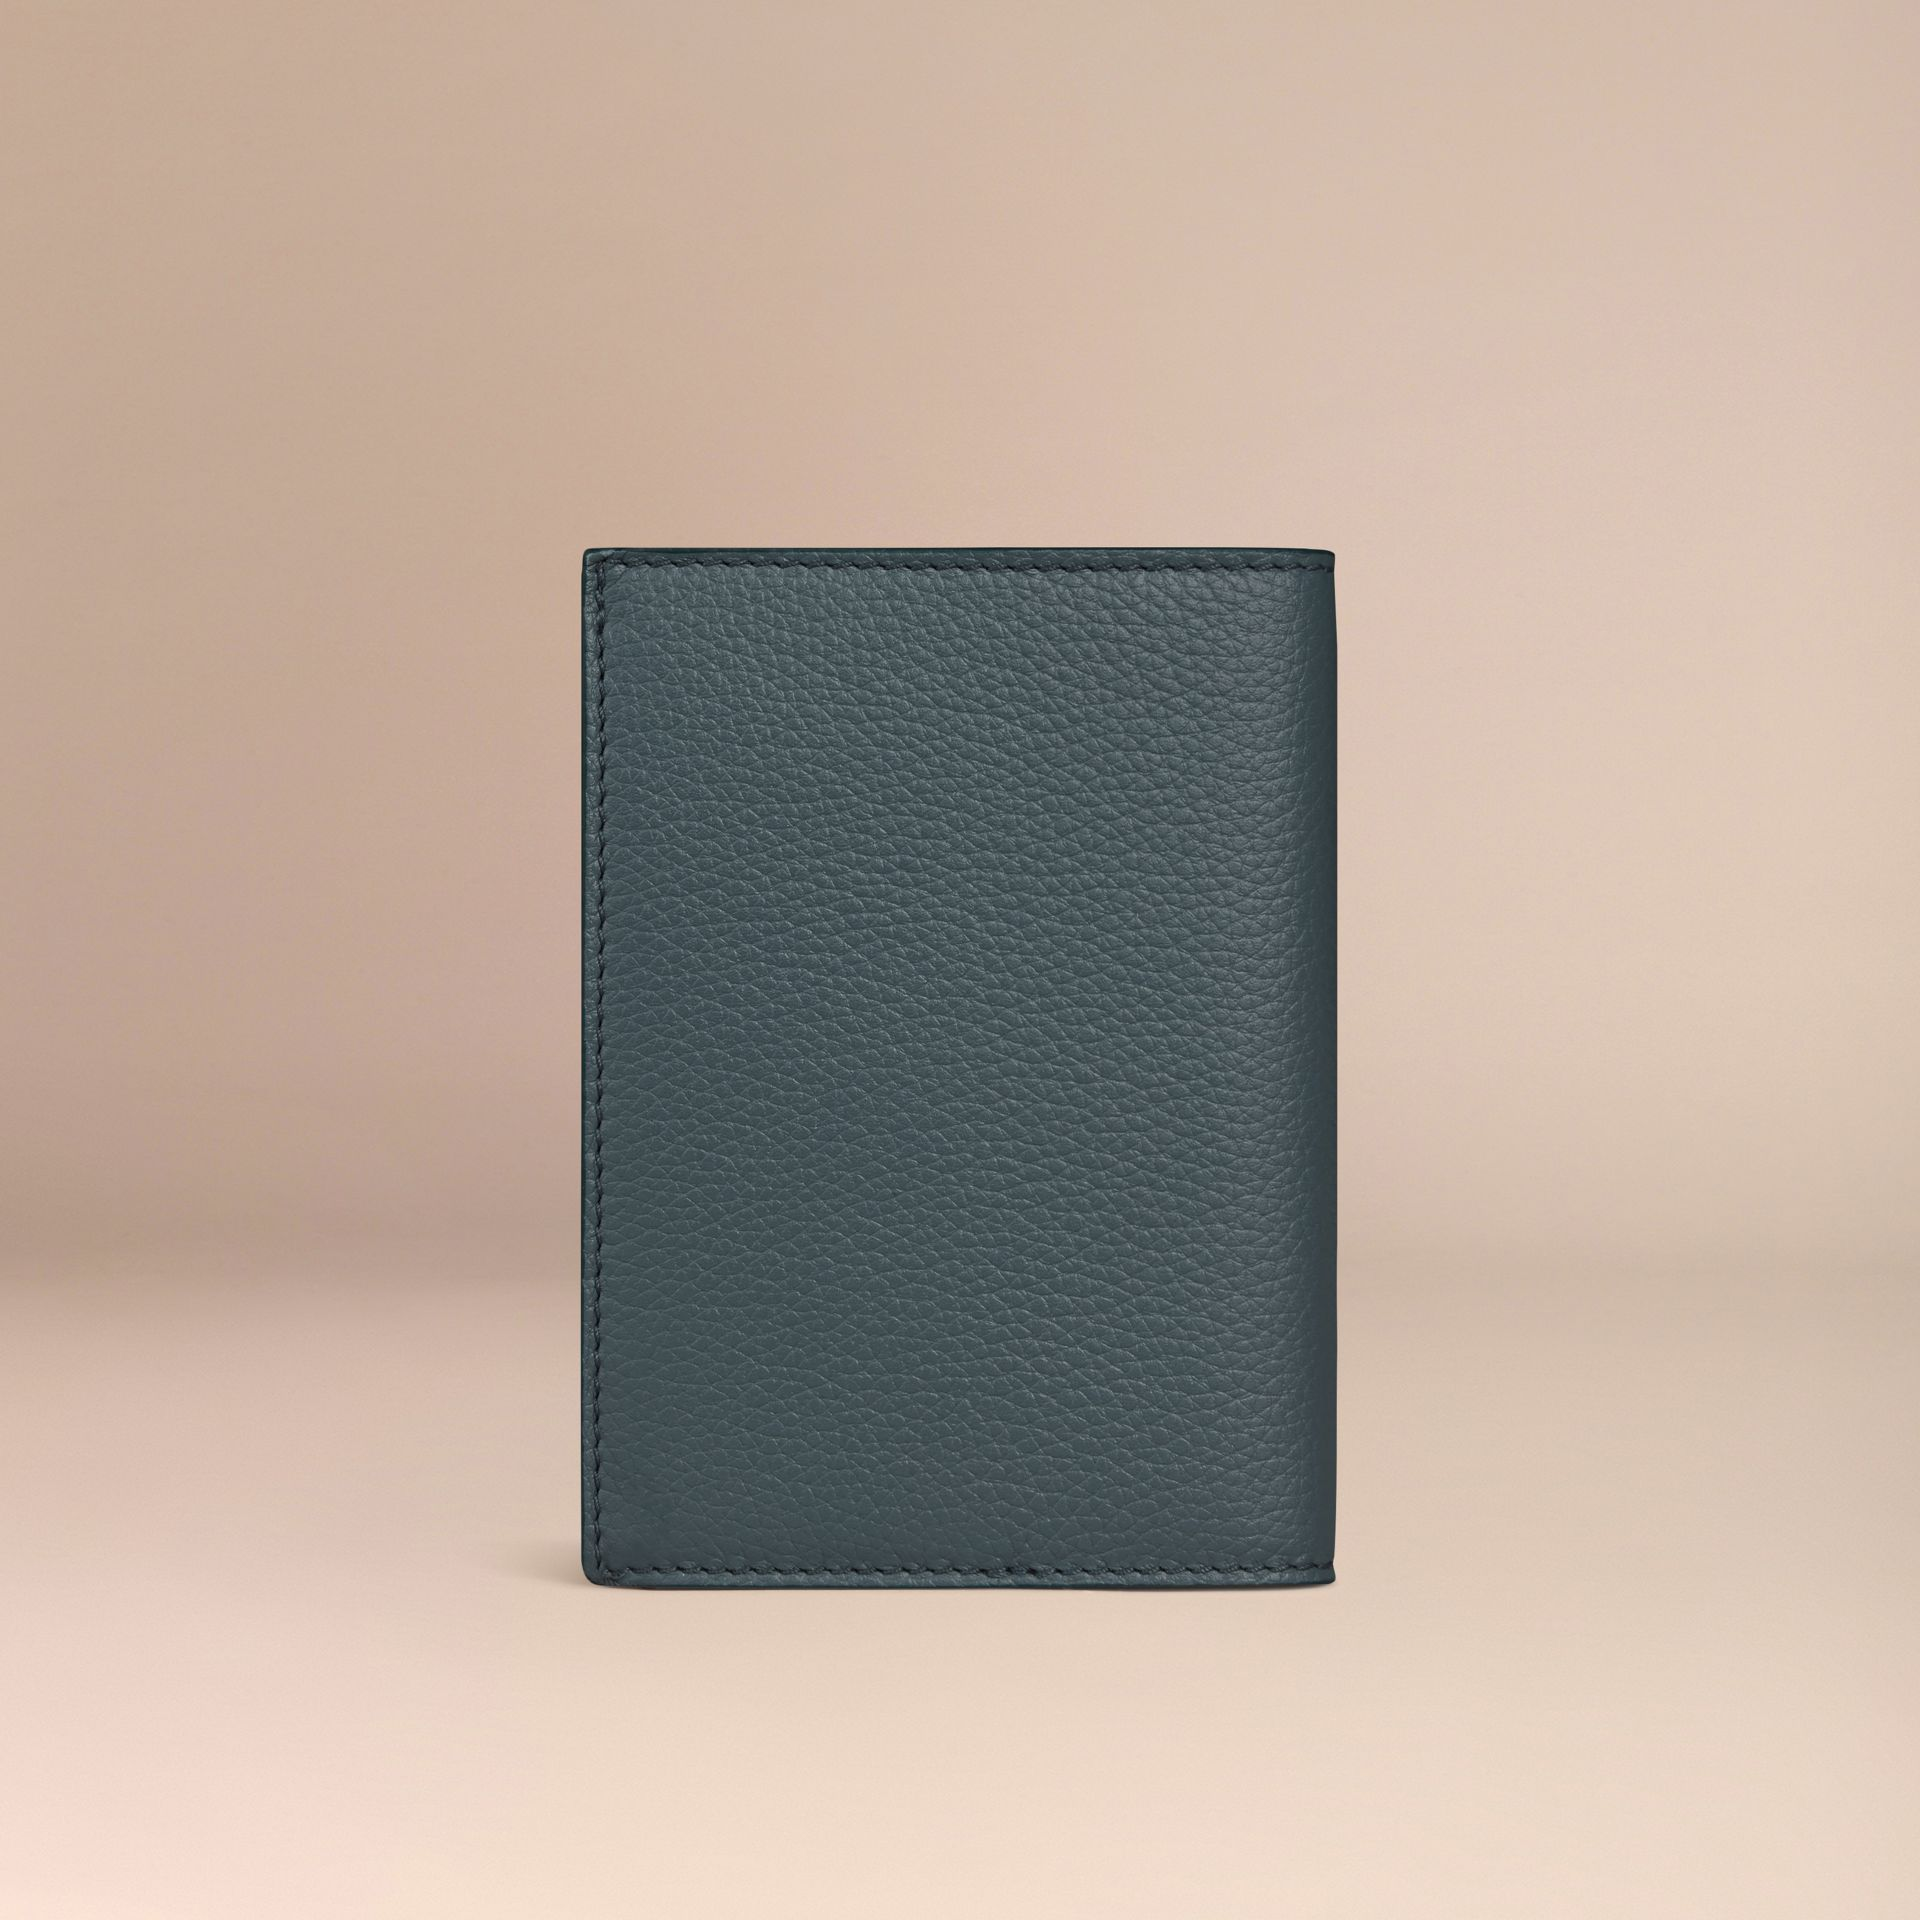 Dusty teal Grainy Leather Passport Cover Dusty Teal - gallery image 3